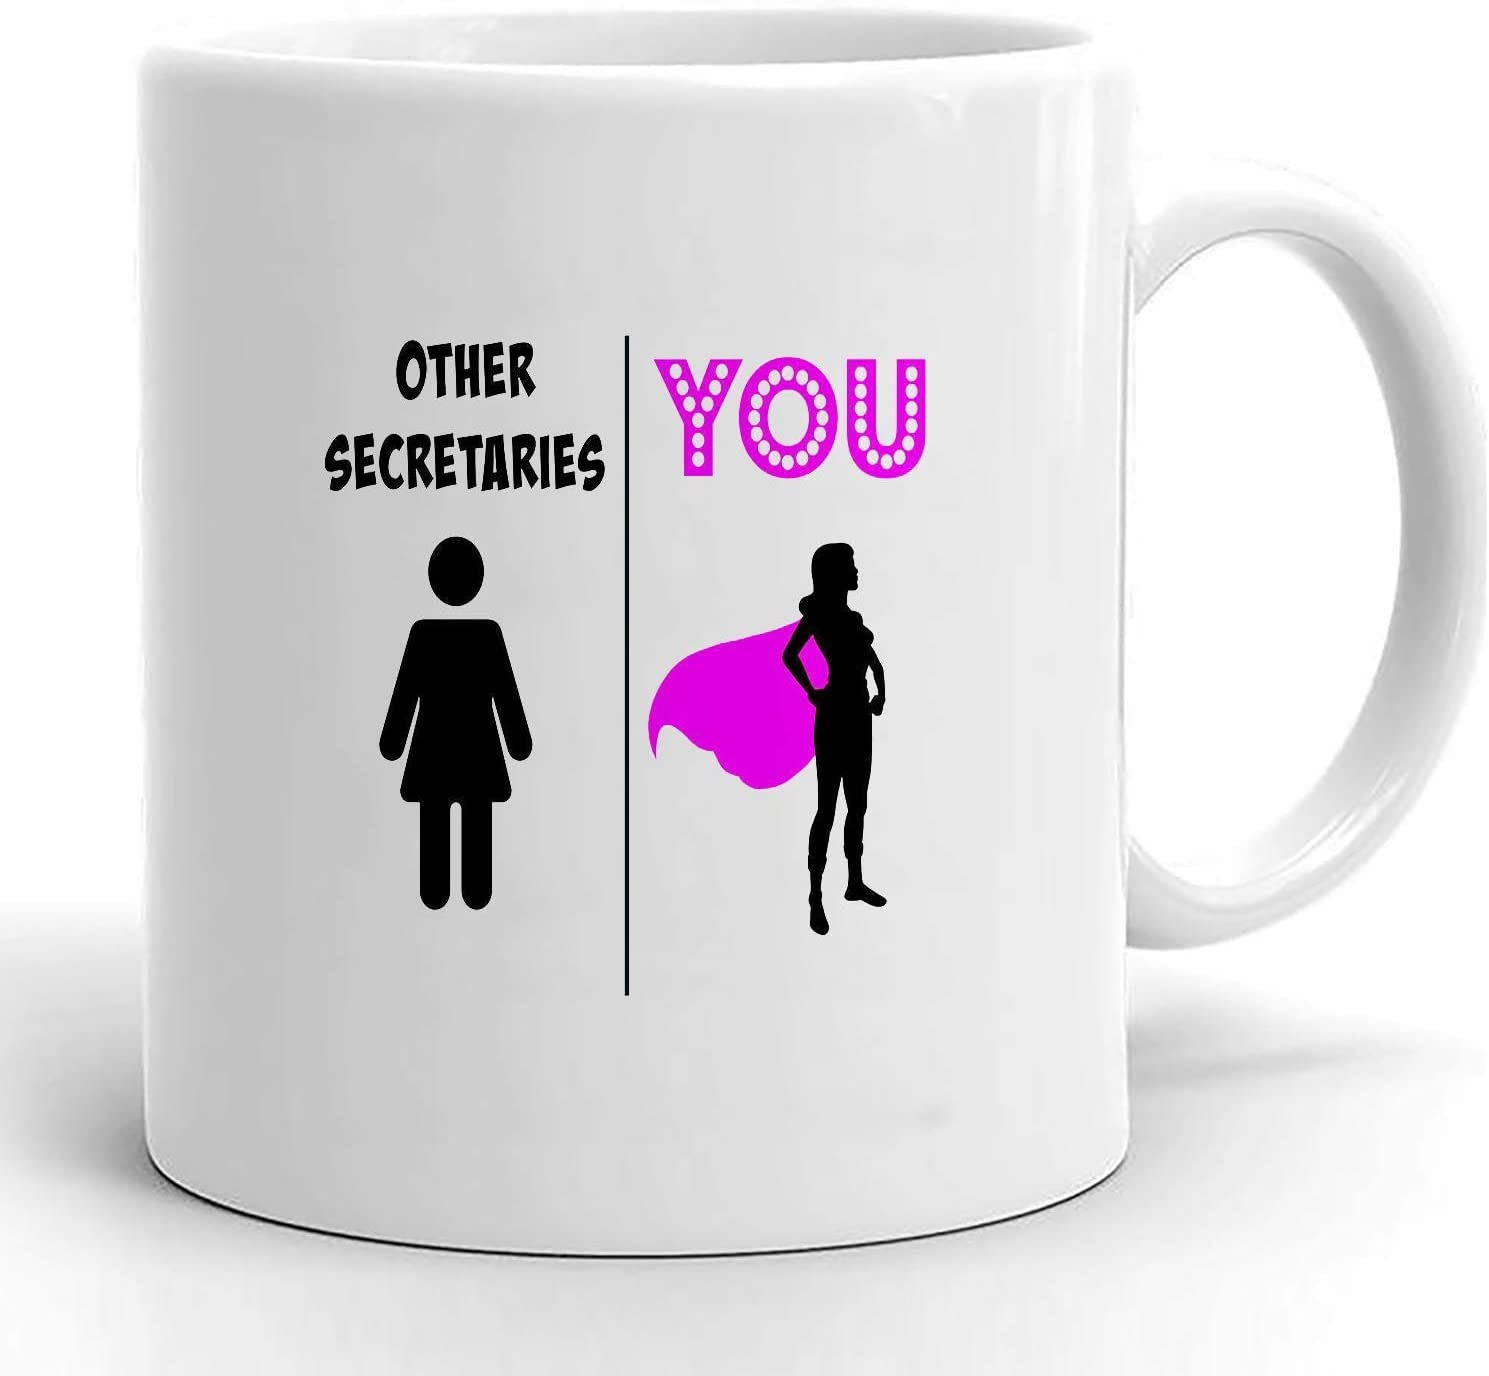 secretary gift, gift for secretary, secretary mug, super secretary, best secretary ever, secretary appreciation, funny secretary mugs